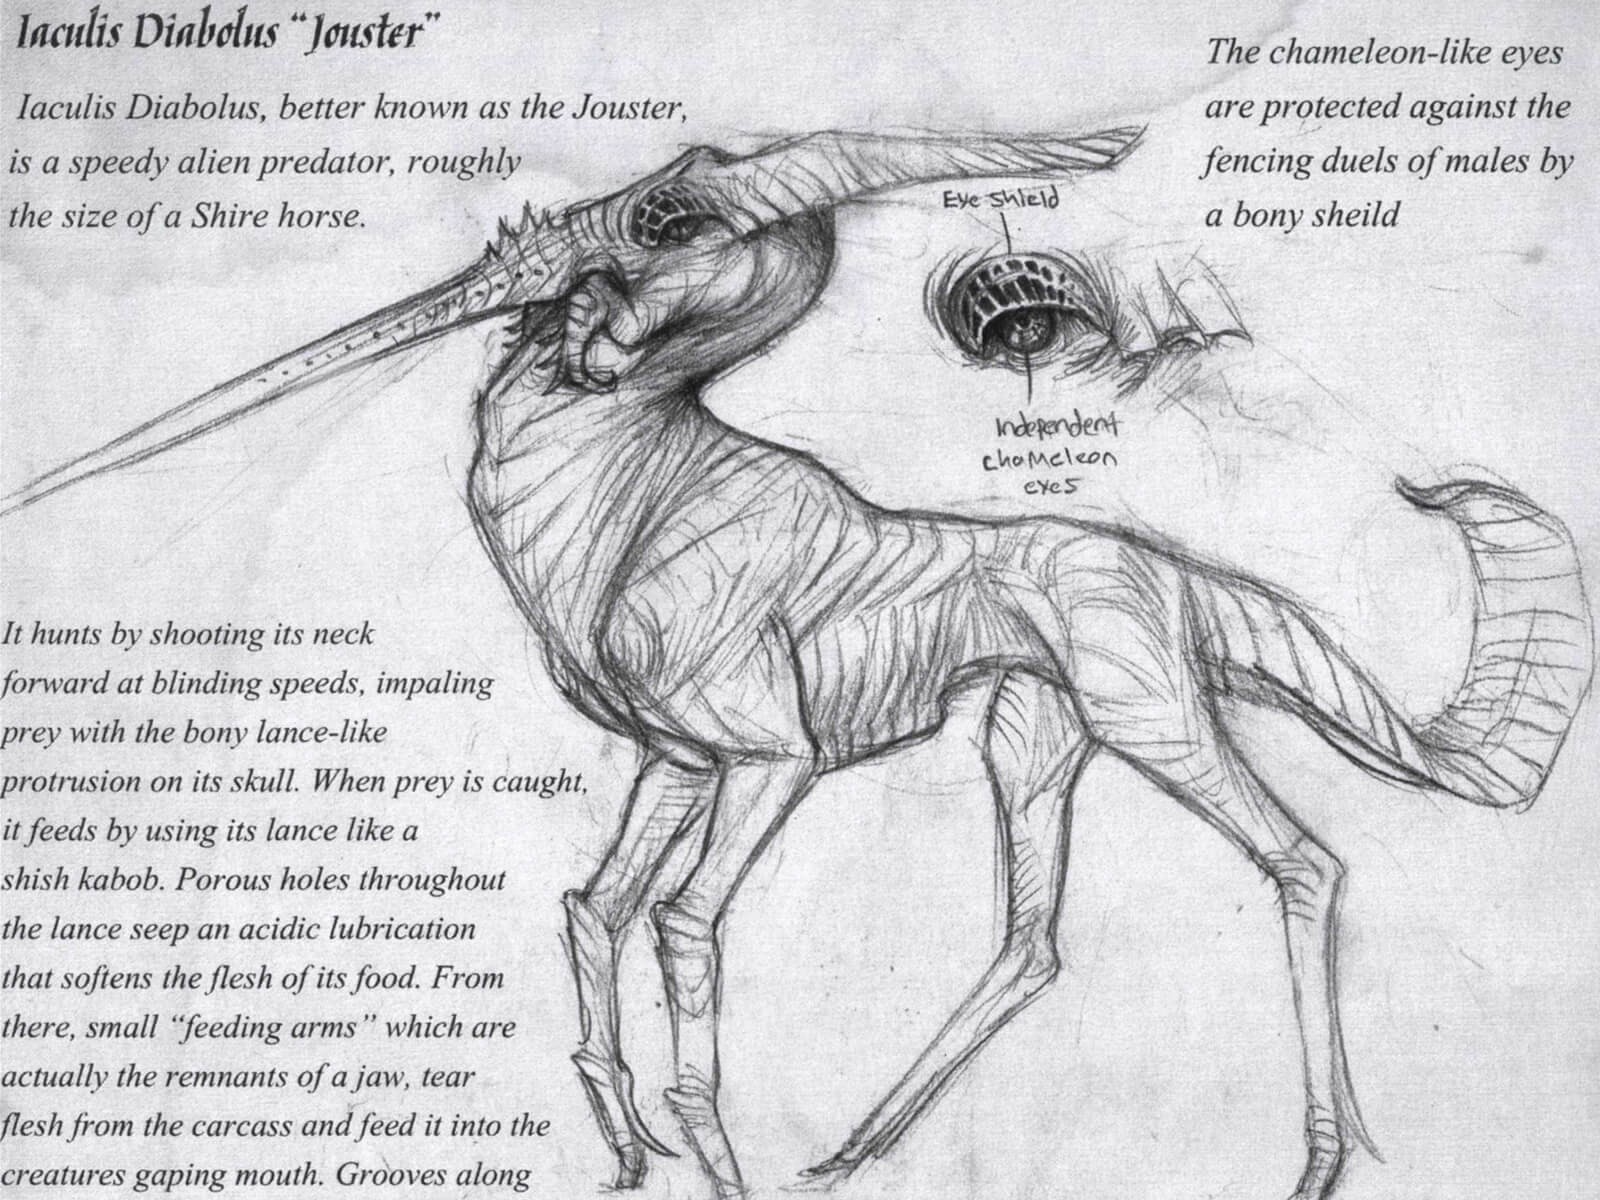 black and white drawing of the anatomy of an alien predator with a horse's body and a lance-like protusion on its skull